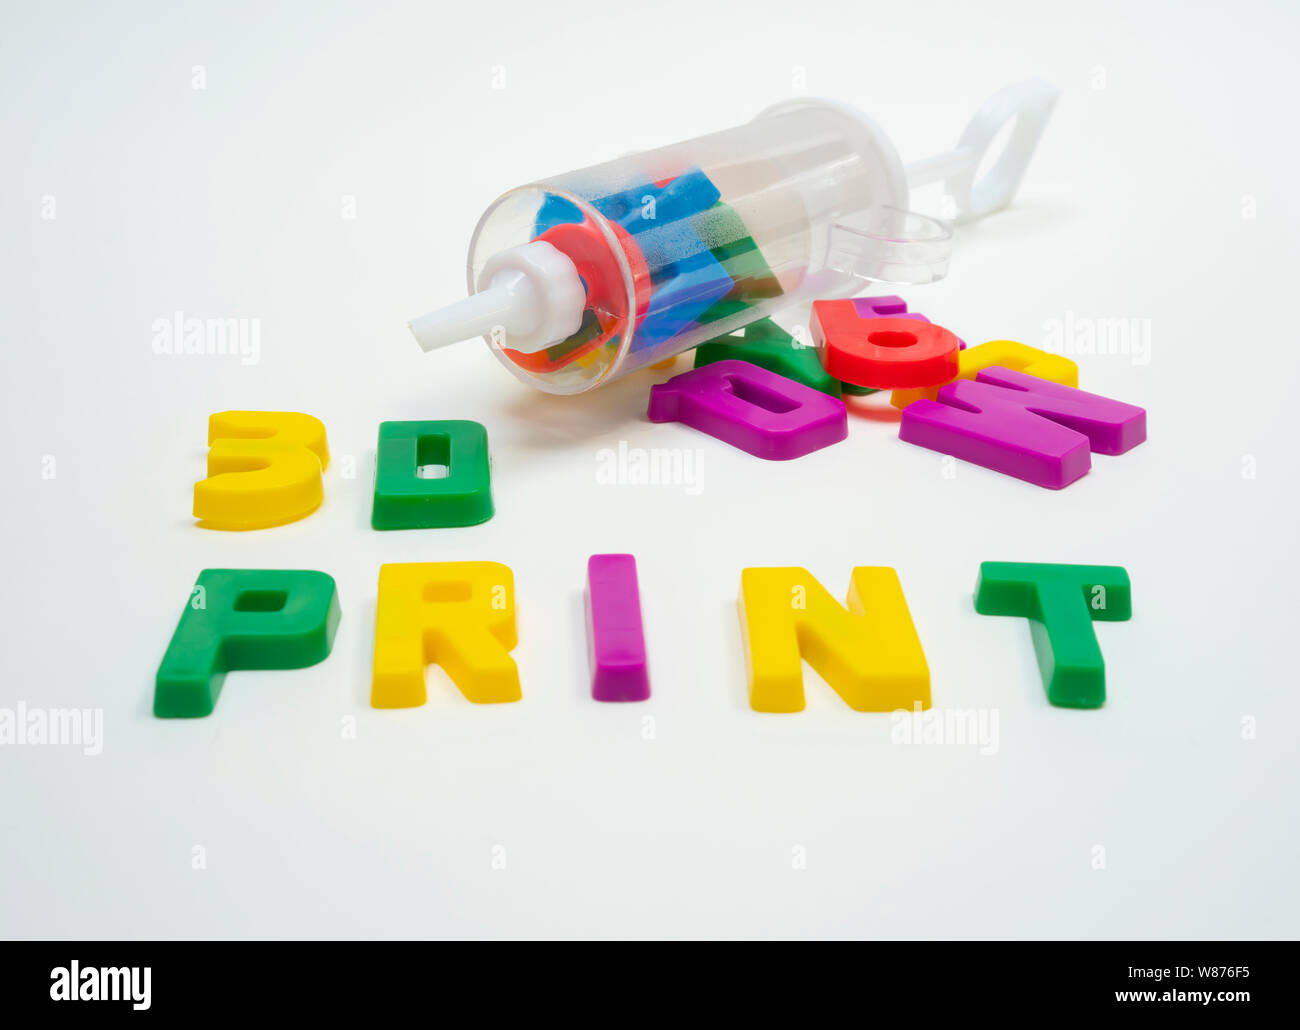 3d Print Stock Photos & 3d Print Stock Images - Alamy